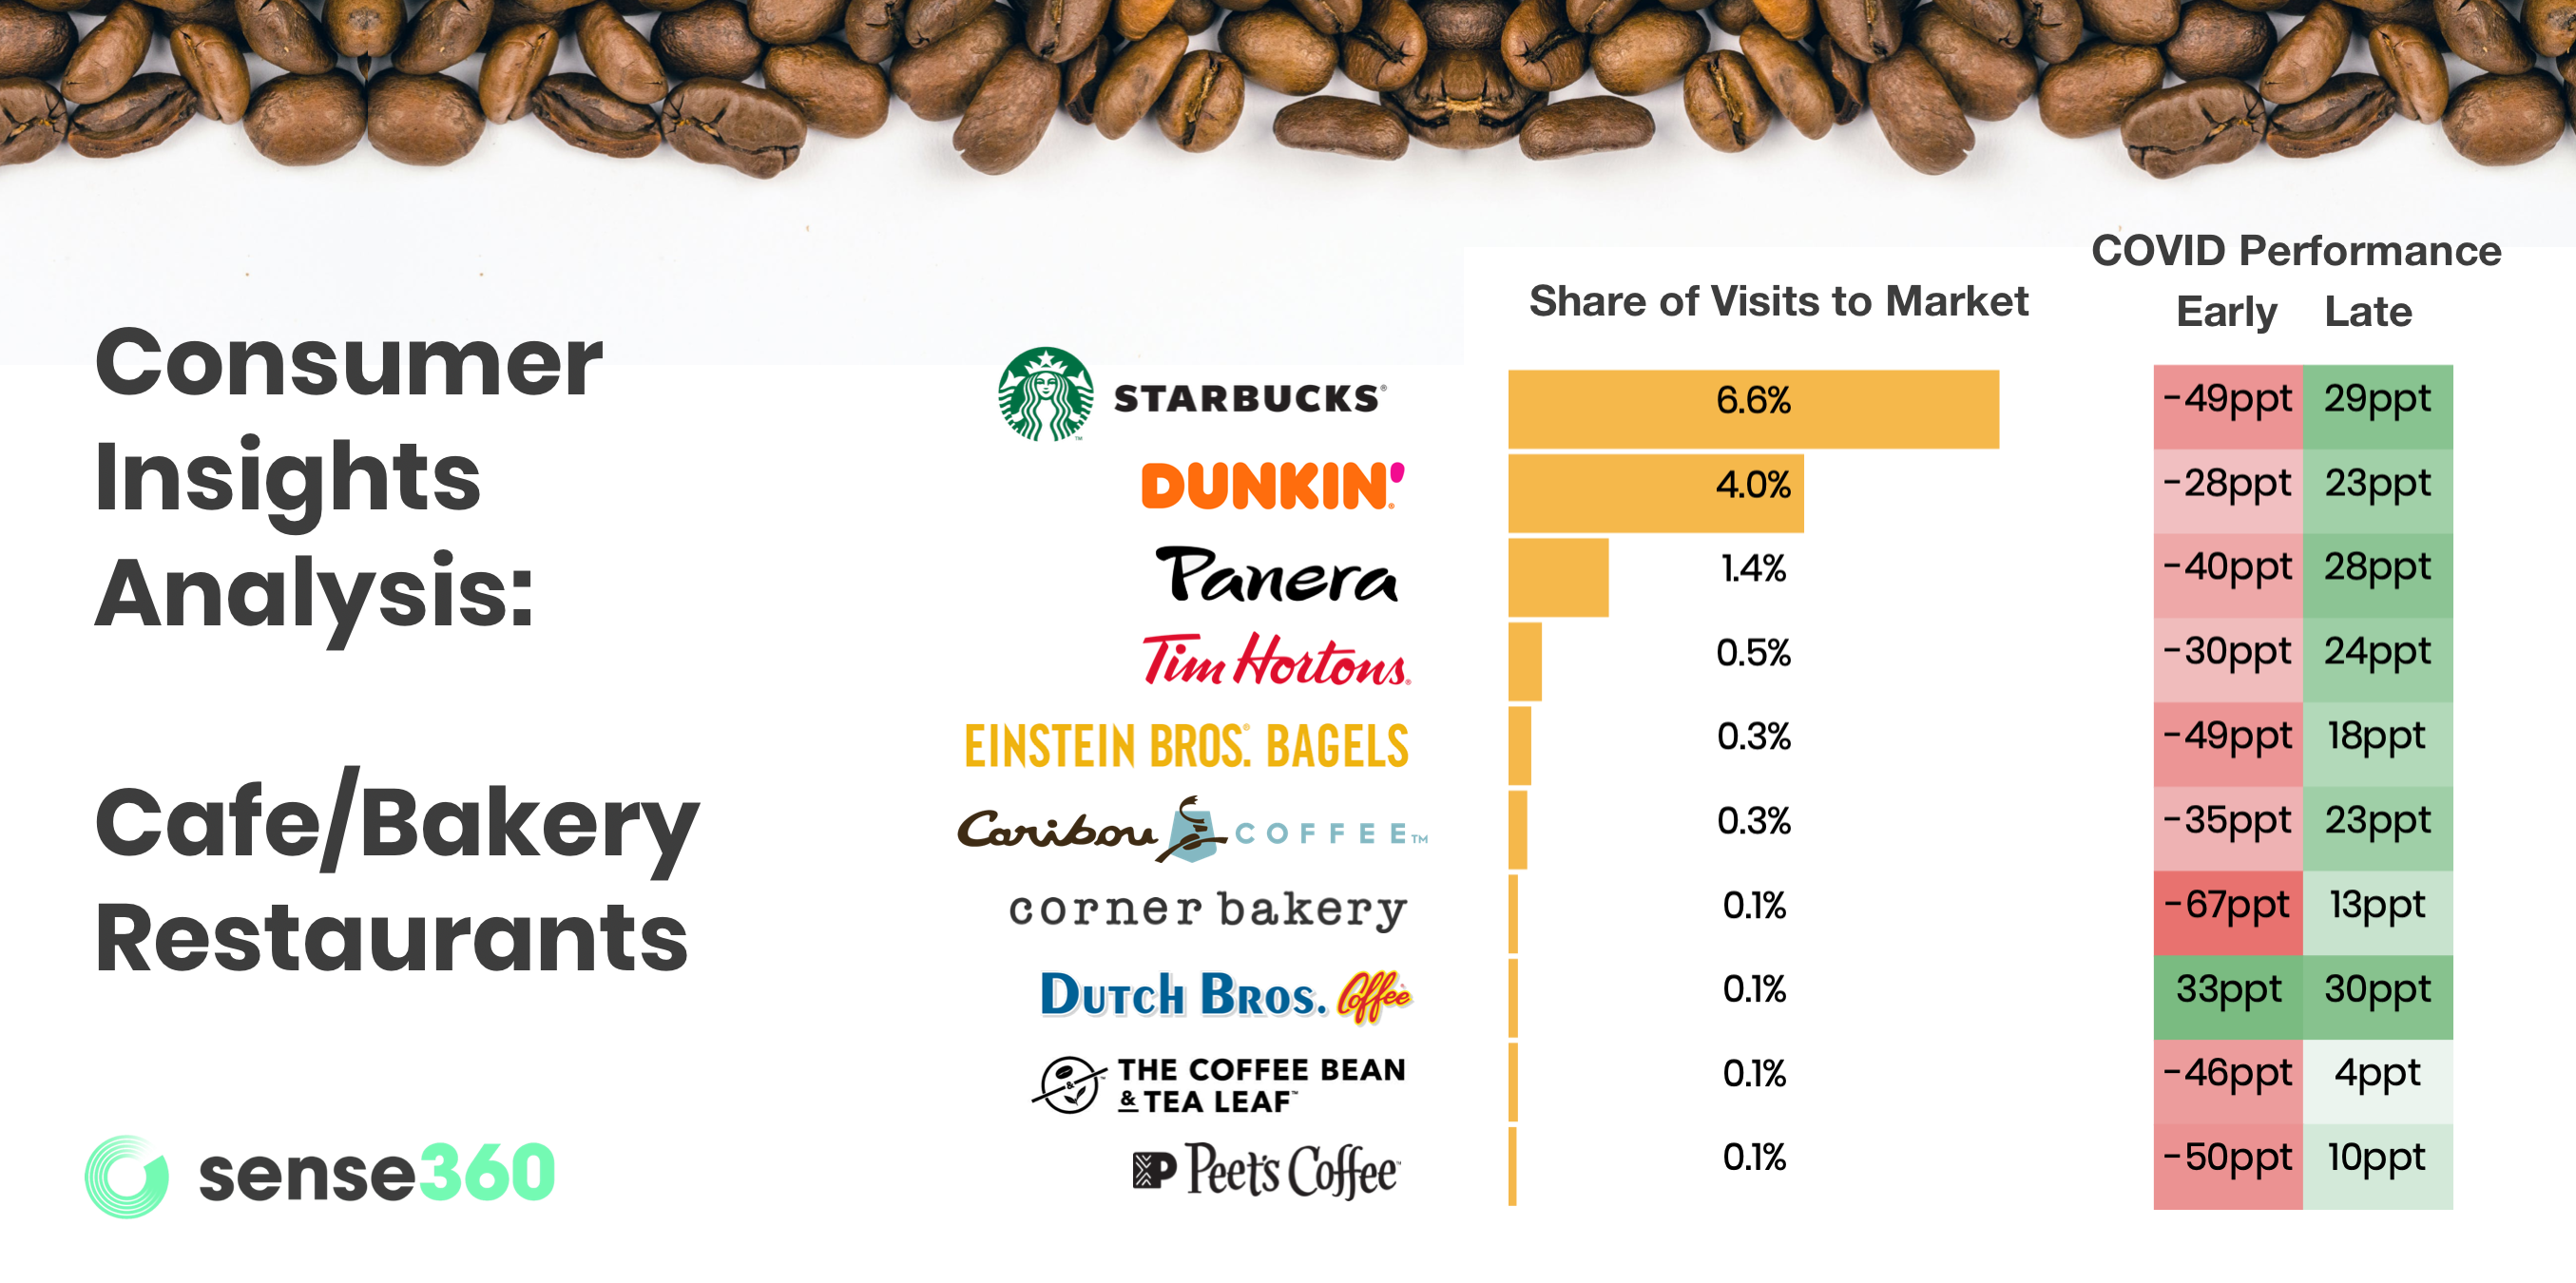 Consumer insights analysis of Starbucks, Dunkin, Panera, Tim Hortons, and more restaurants